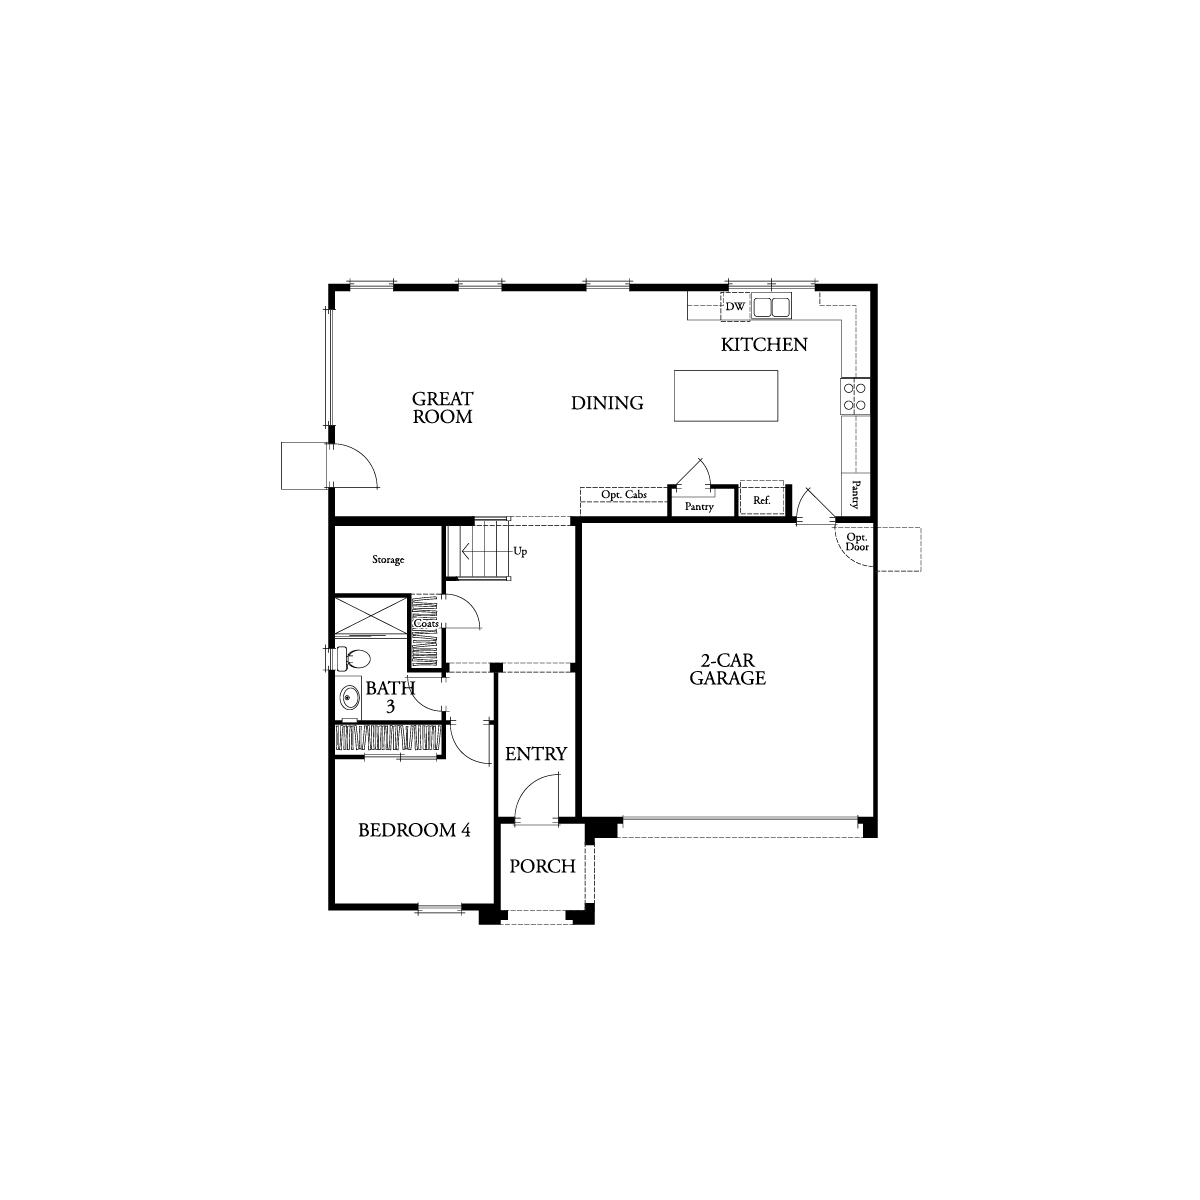 First floor residence 3 floor plan | Waverly at New Haven in Ontario Ranch, CA | Brookfield Residential